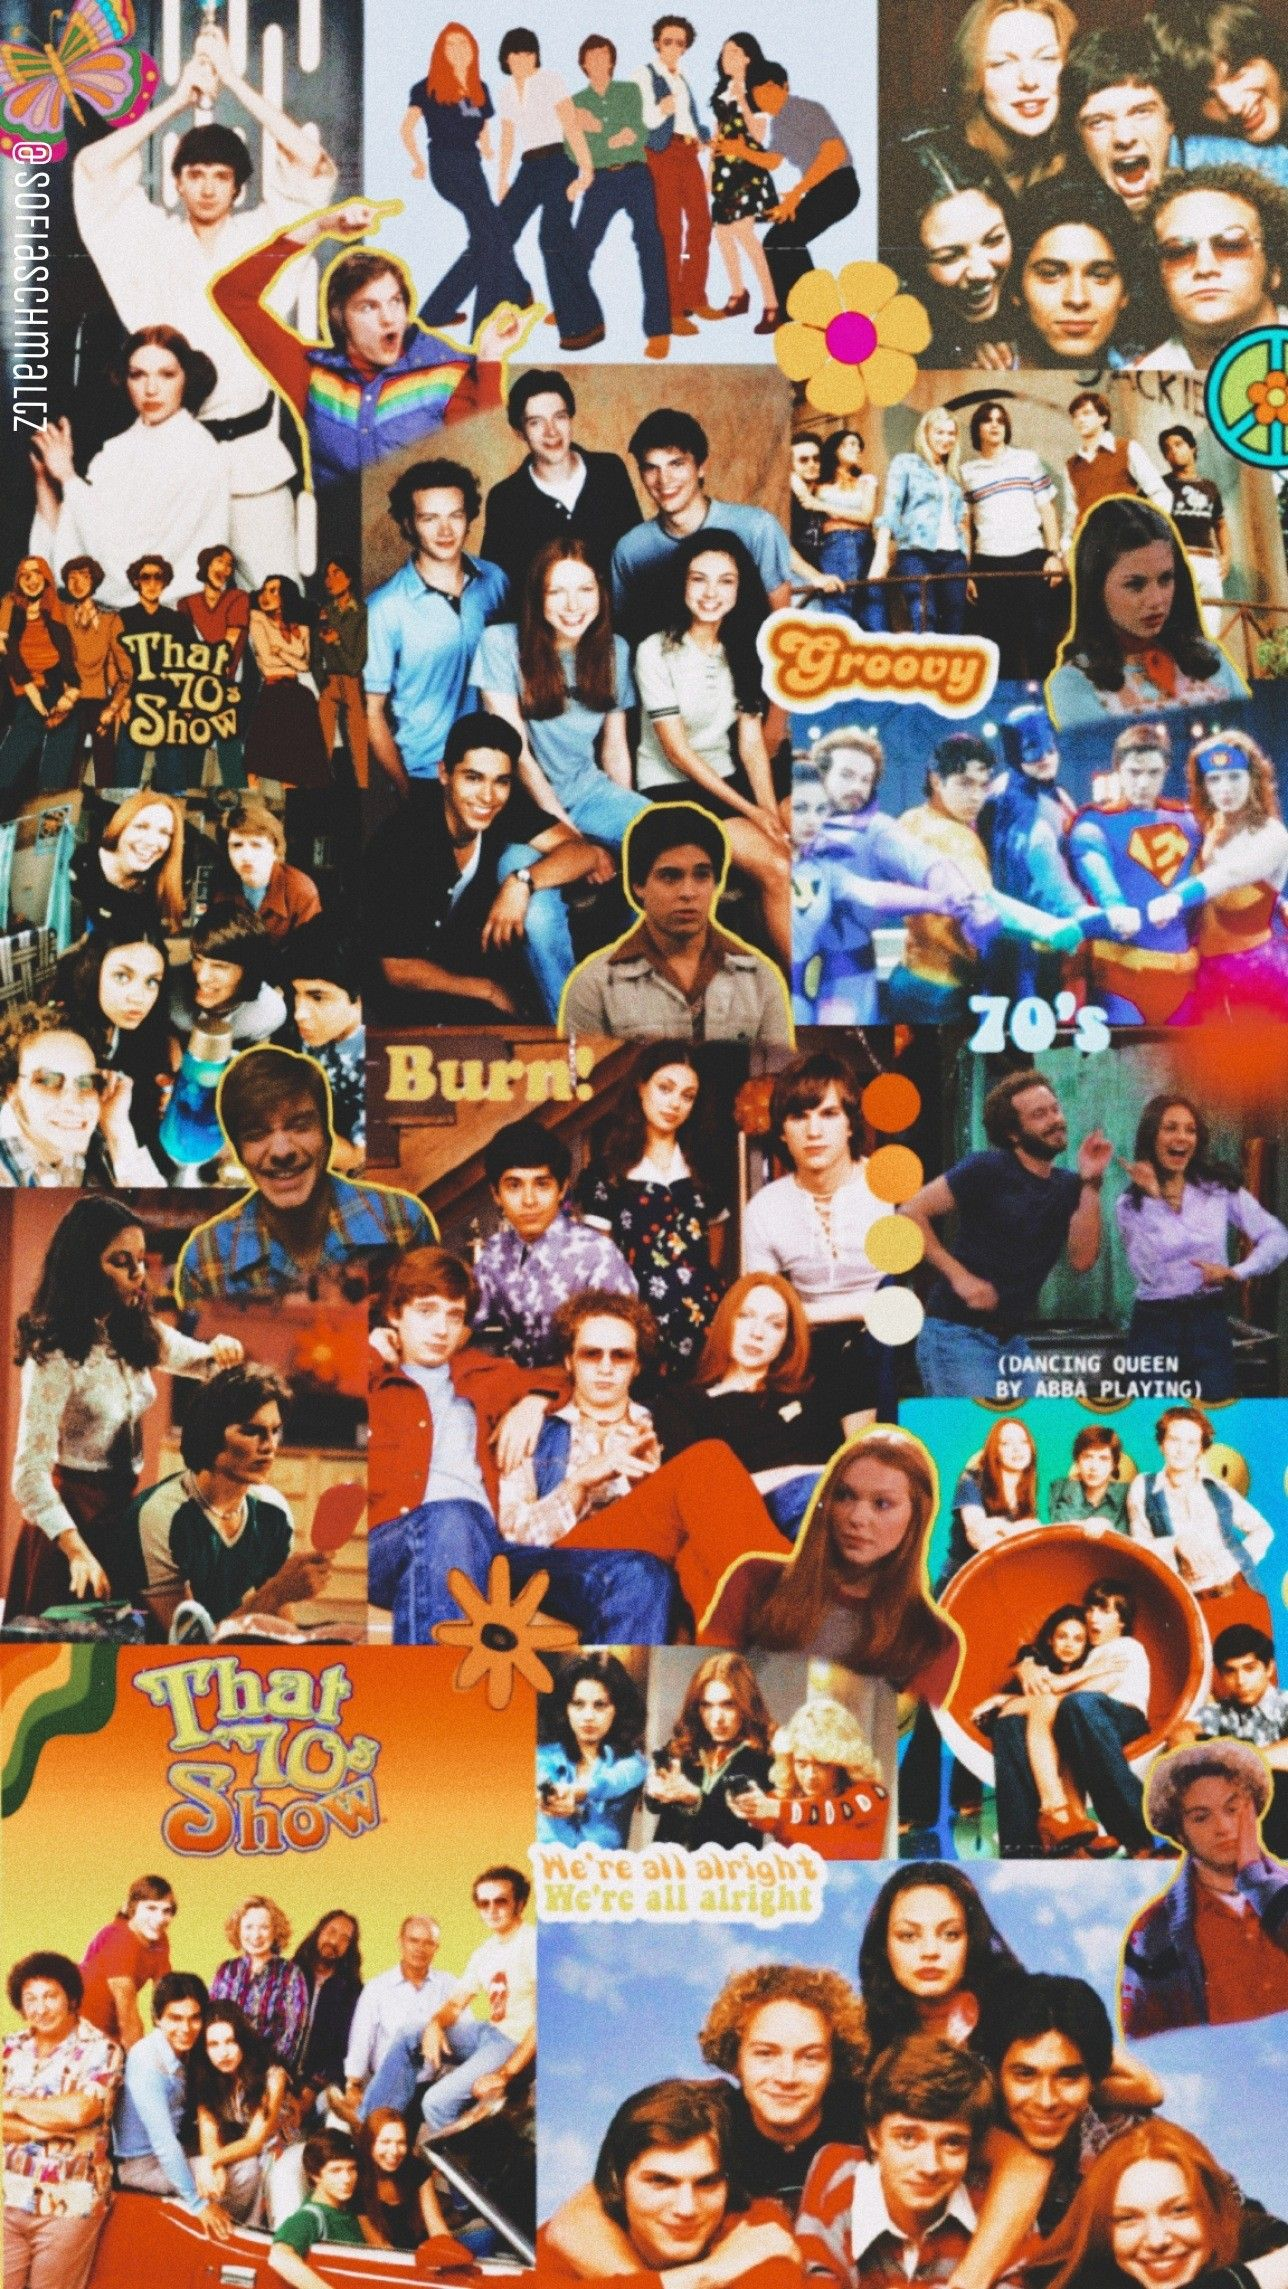 Wallpaper That 70s Show Cute Wallpapers Aesthetic Iphone Wallpaper That 70s Show